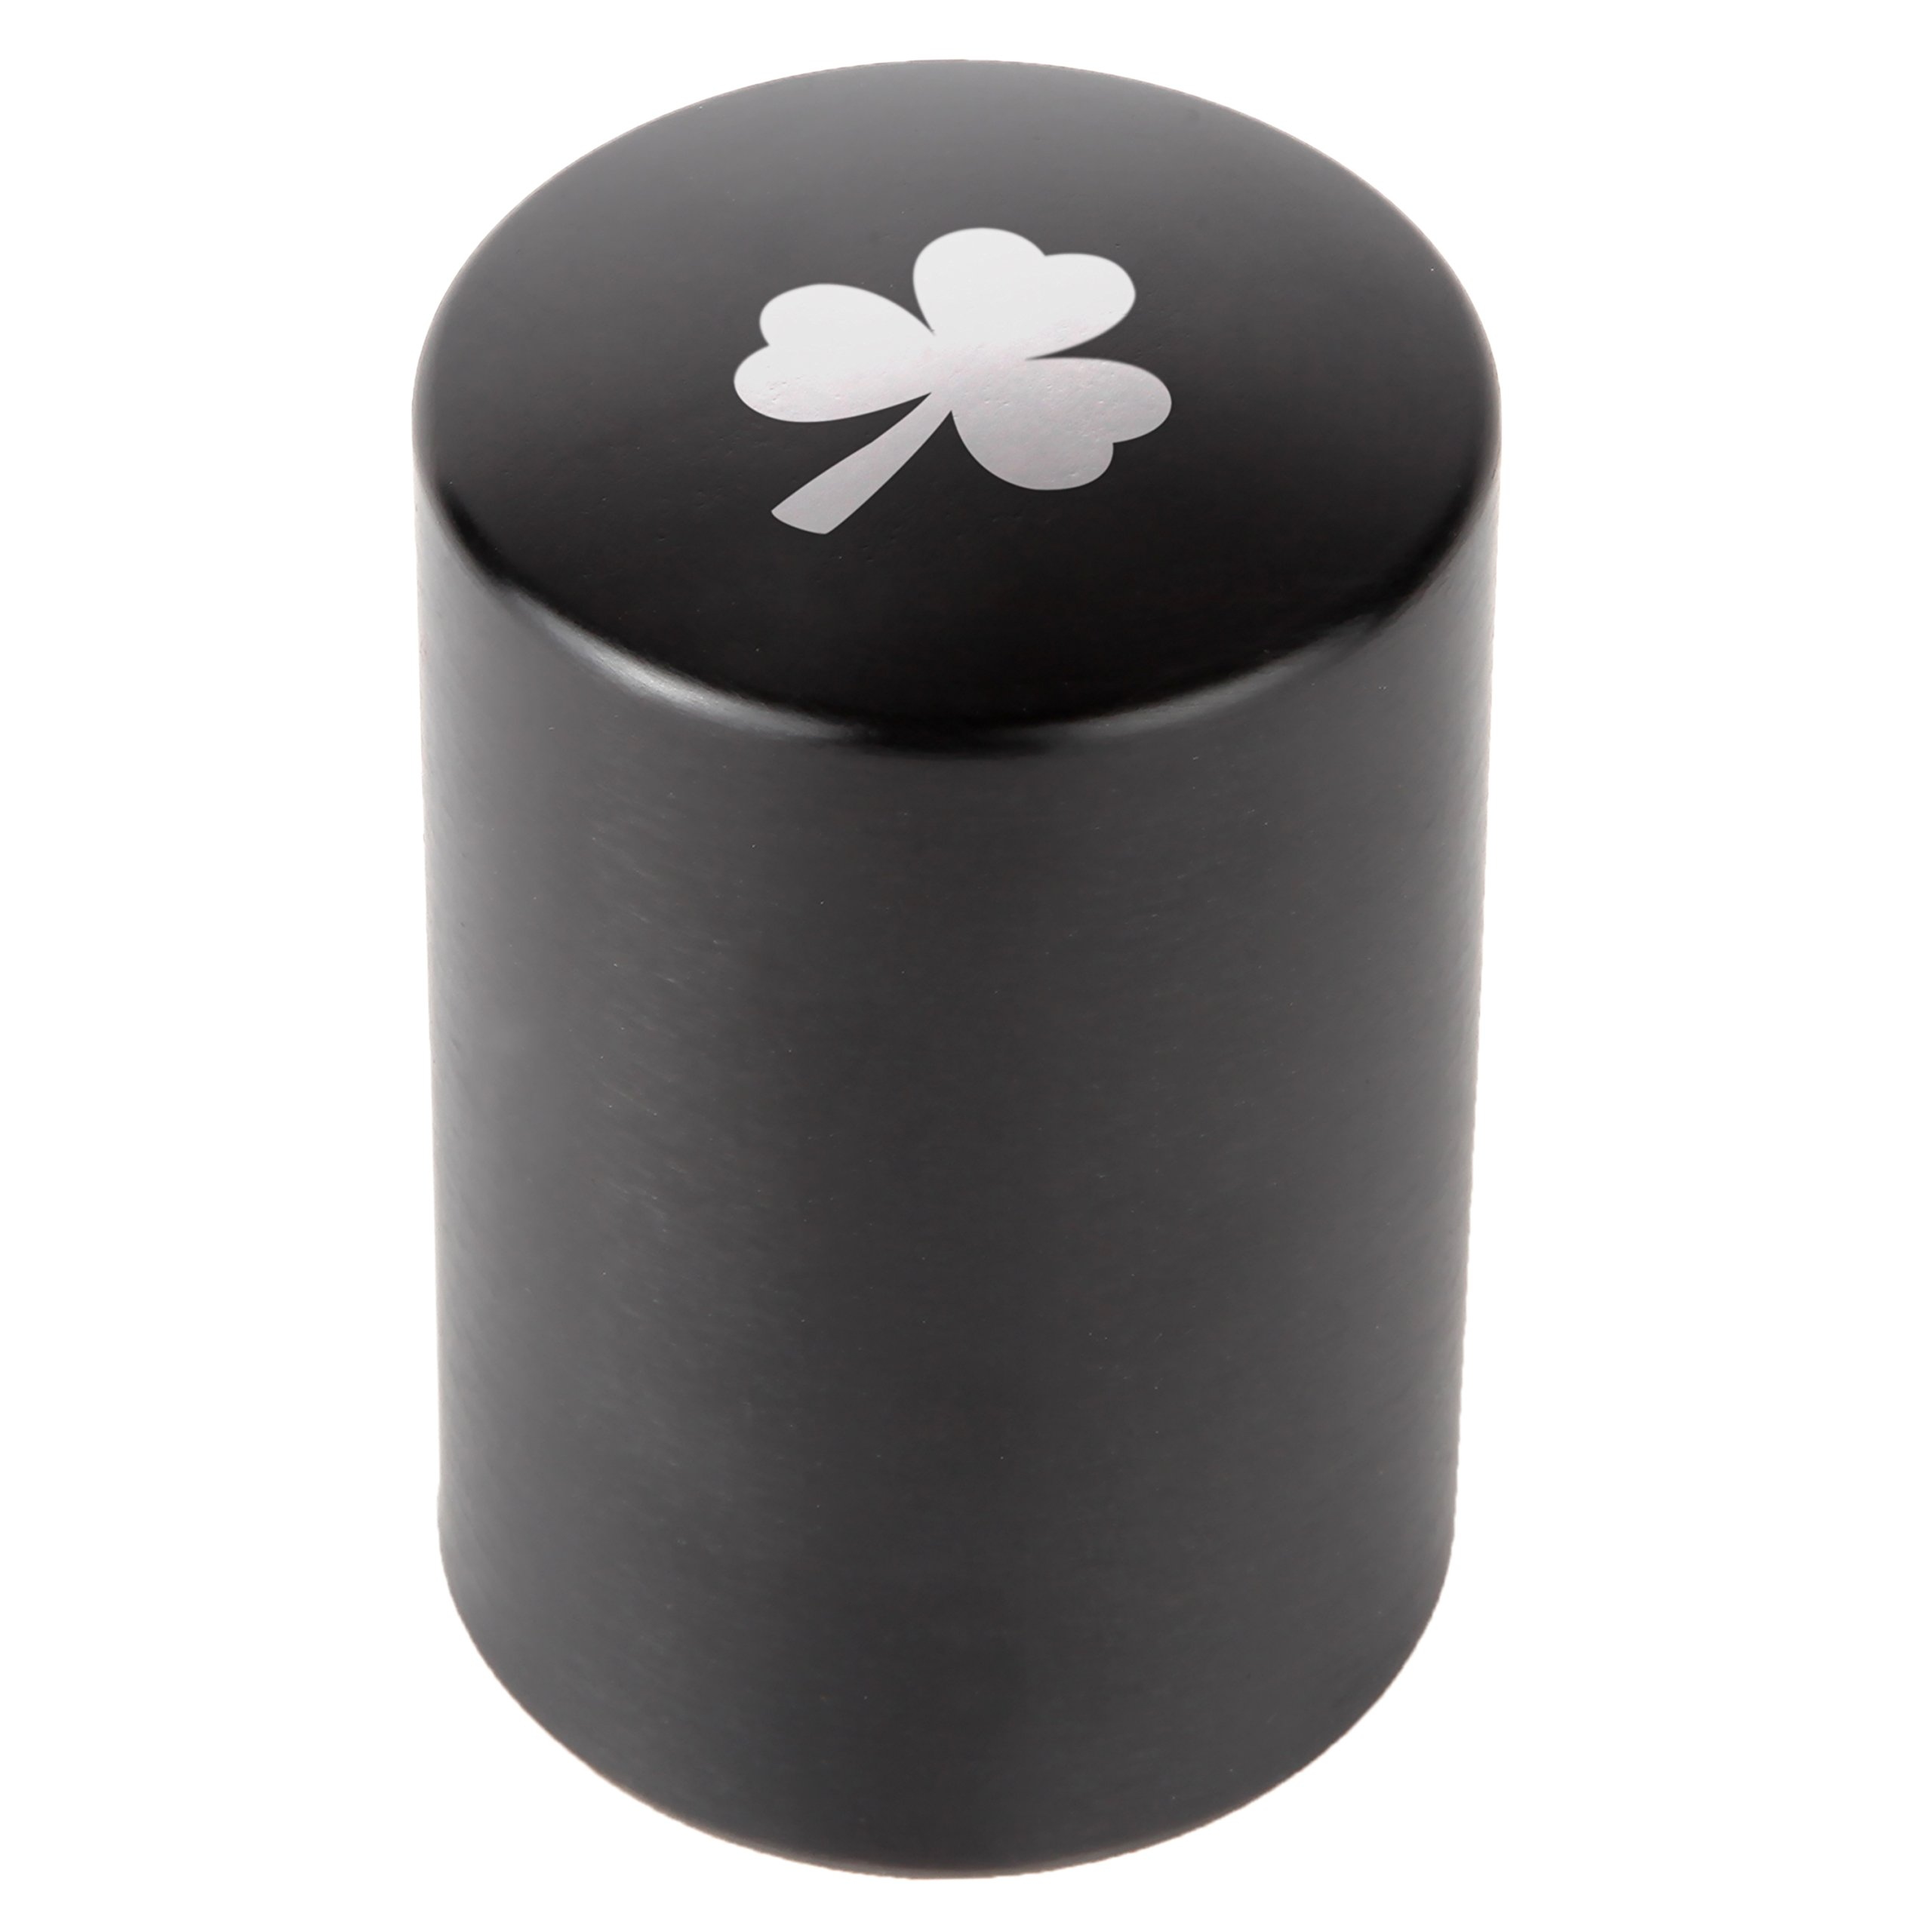 Clover Automatic Bottle Opener - Laser Etched Design - Bottle Opener With Catcher - Fast Bottle Opener For Parties, Events Or Everyday Use